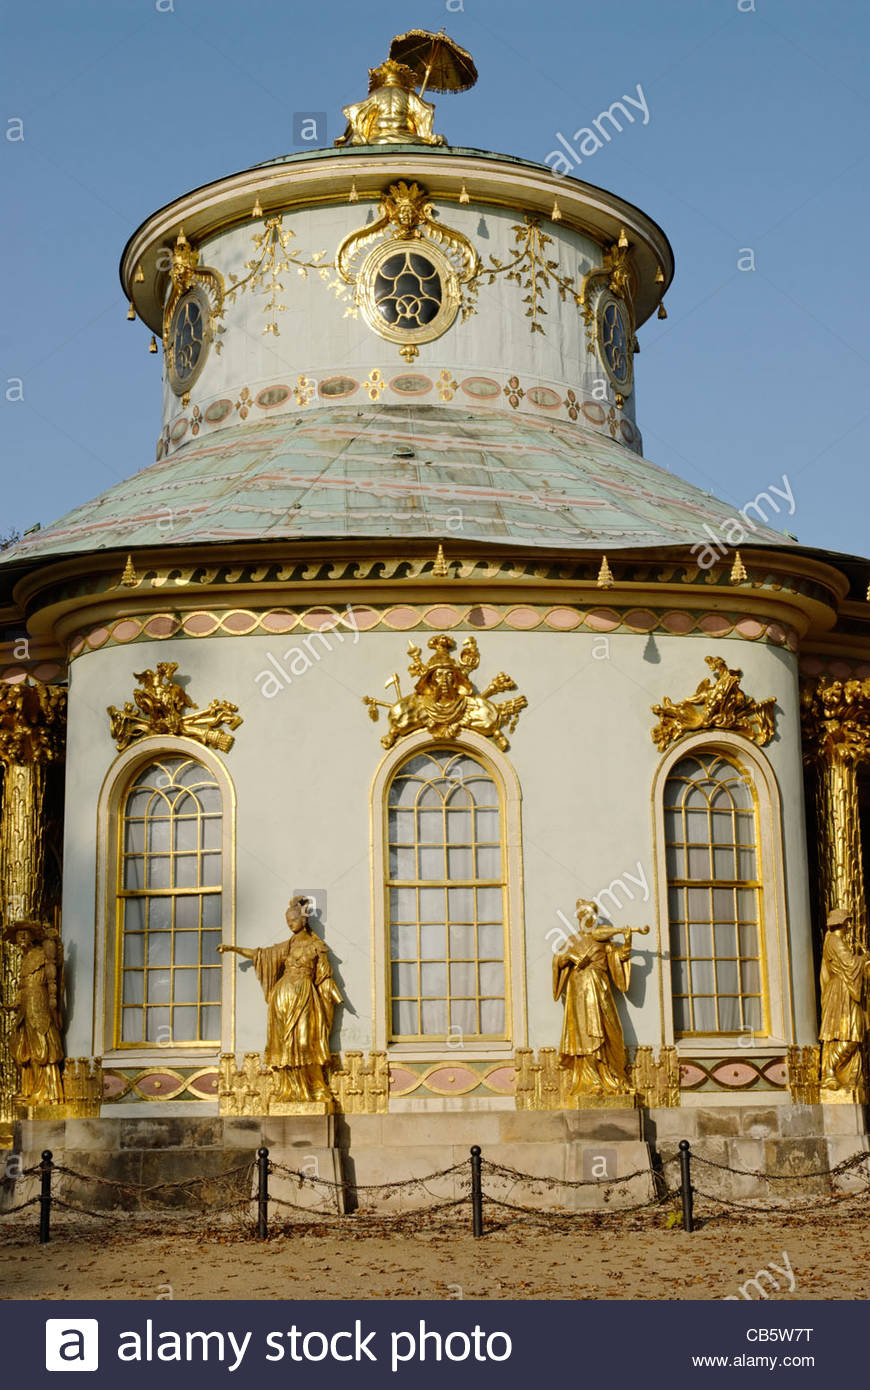 The Chinese House, a garden pavilion in Sanssouci Park in Potsdam with golden statues - Stock Image